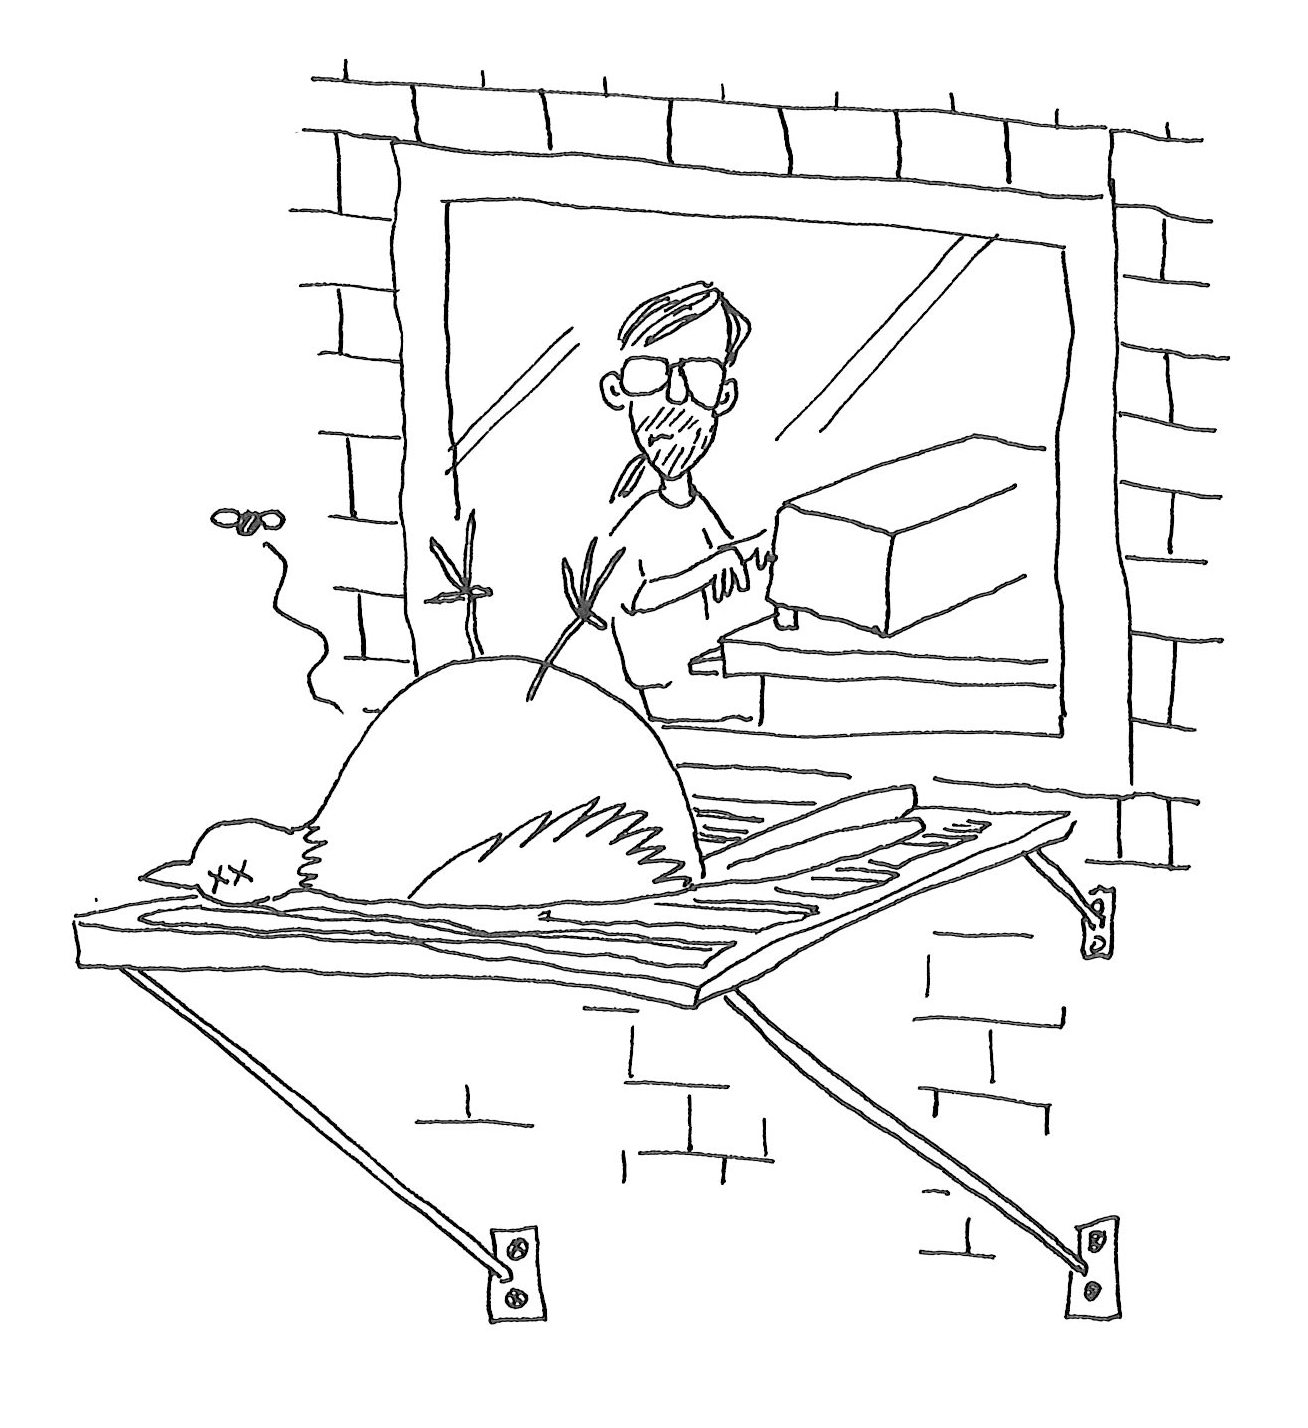 The Pigeon of Dorian Gray, and why you should throw it off the fire escape